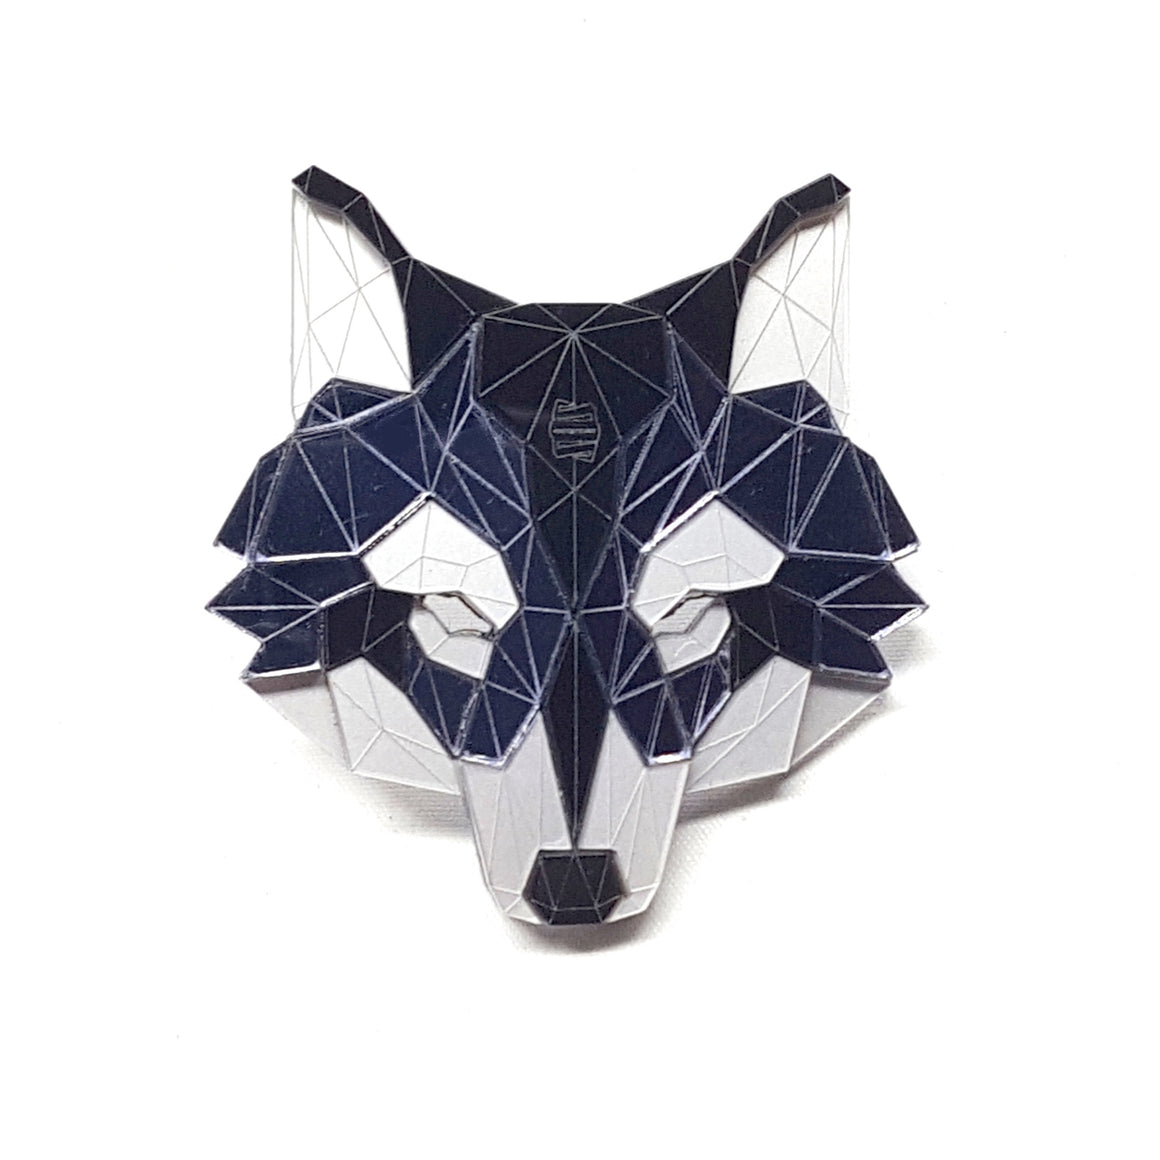 Wolf Head Brooch (Dark Knight) by Sstutter